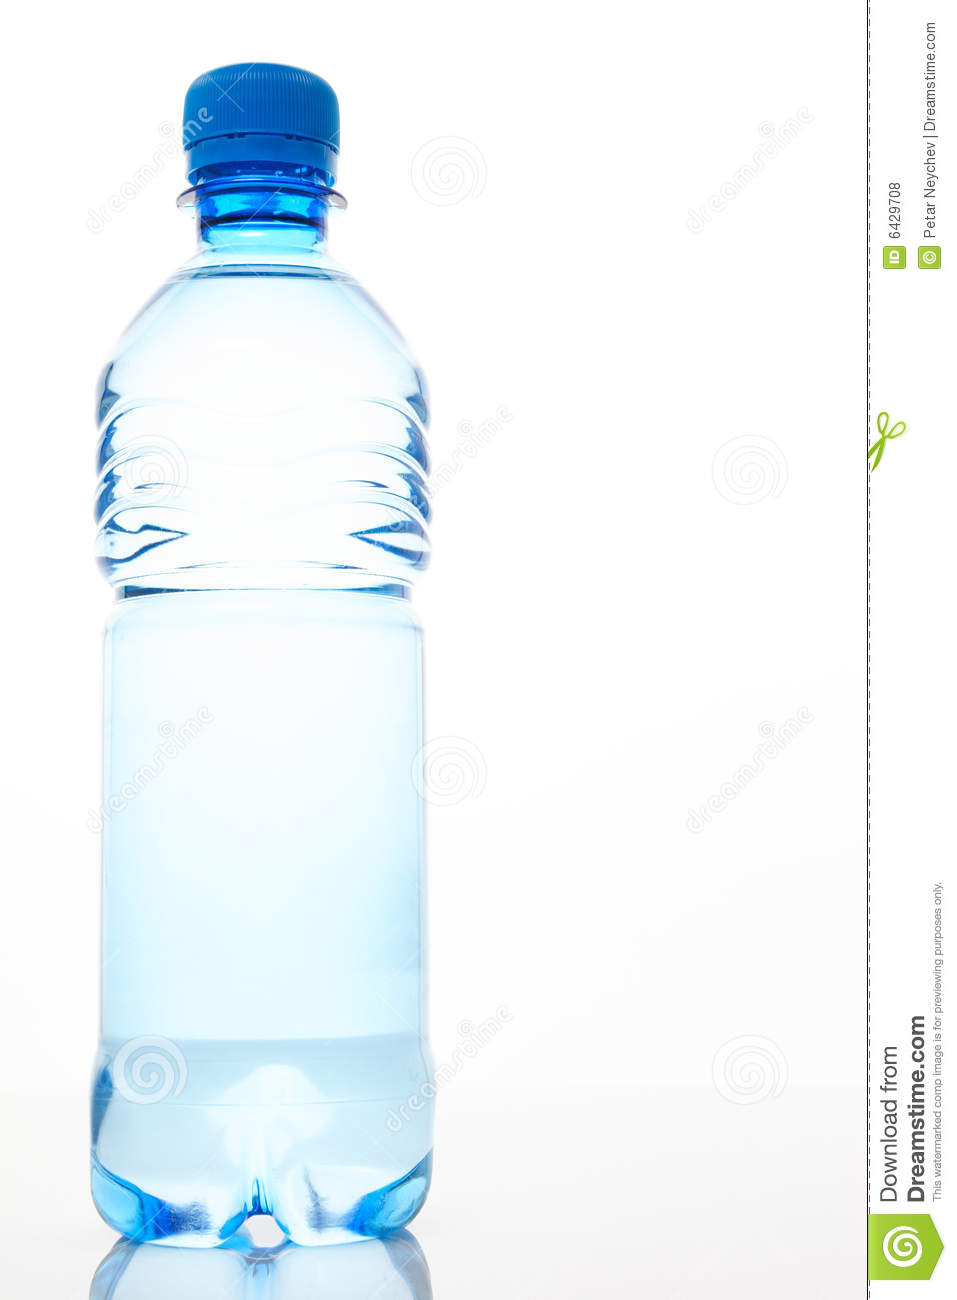 A Bottle Of Water Royalty Free Stock Photos Image 6429708